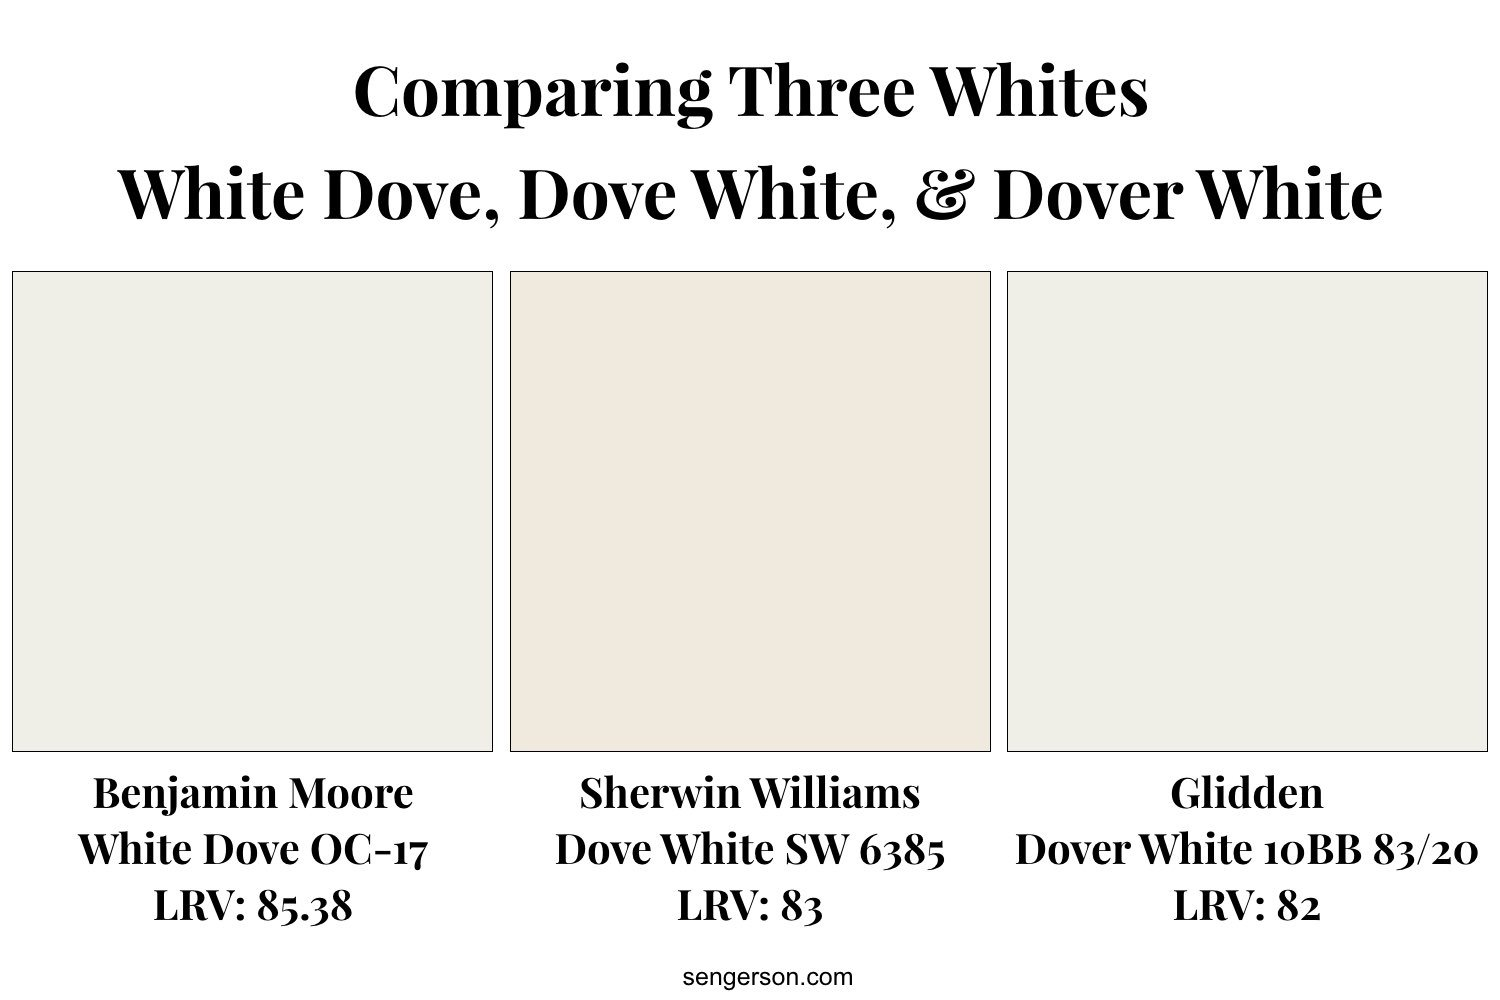 white dove vs dove white vs dover white